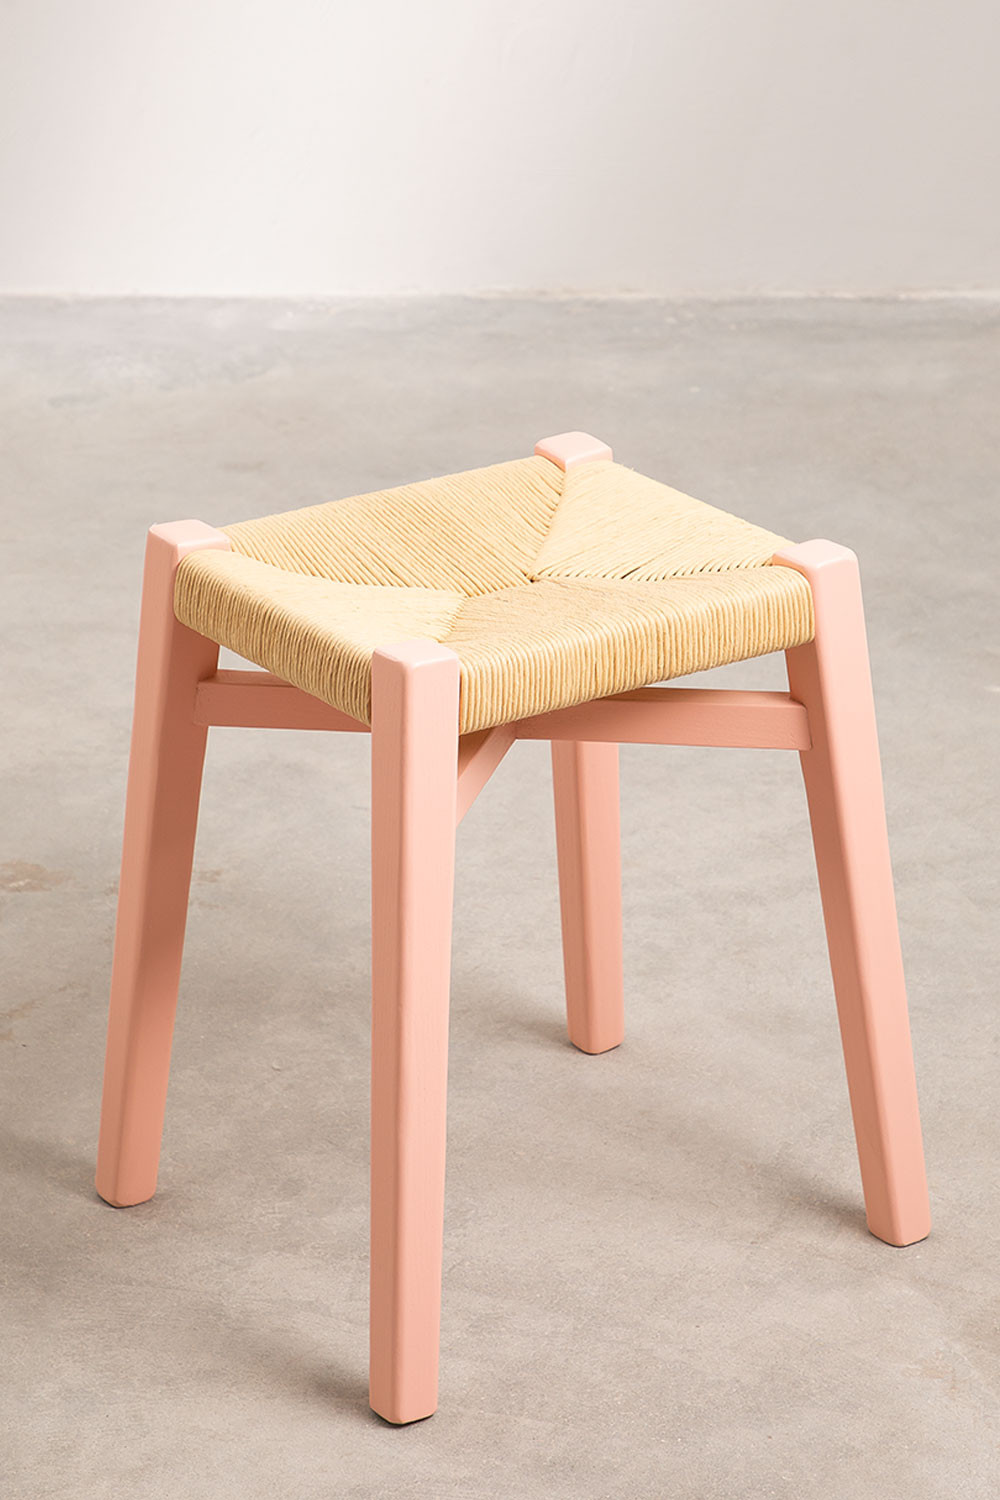 Low  Wooden Stool Uish, gallery image 1